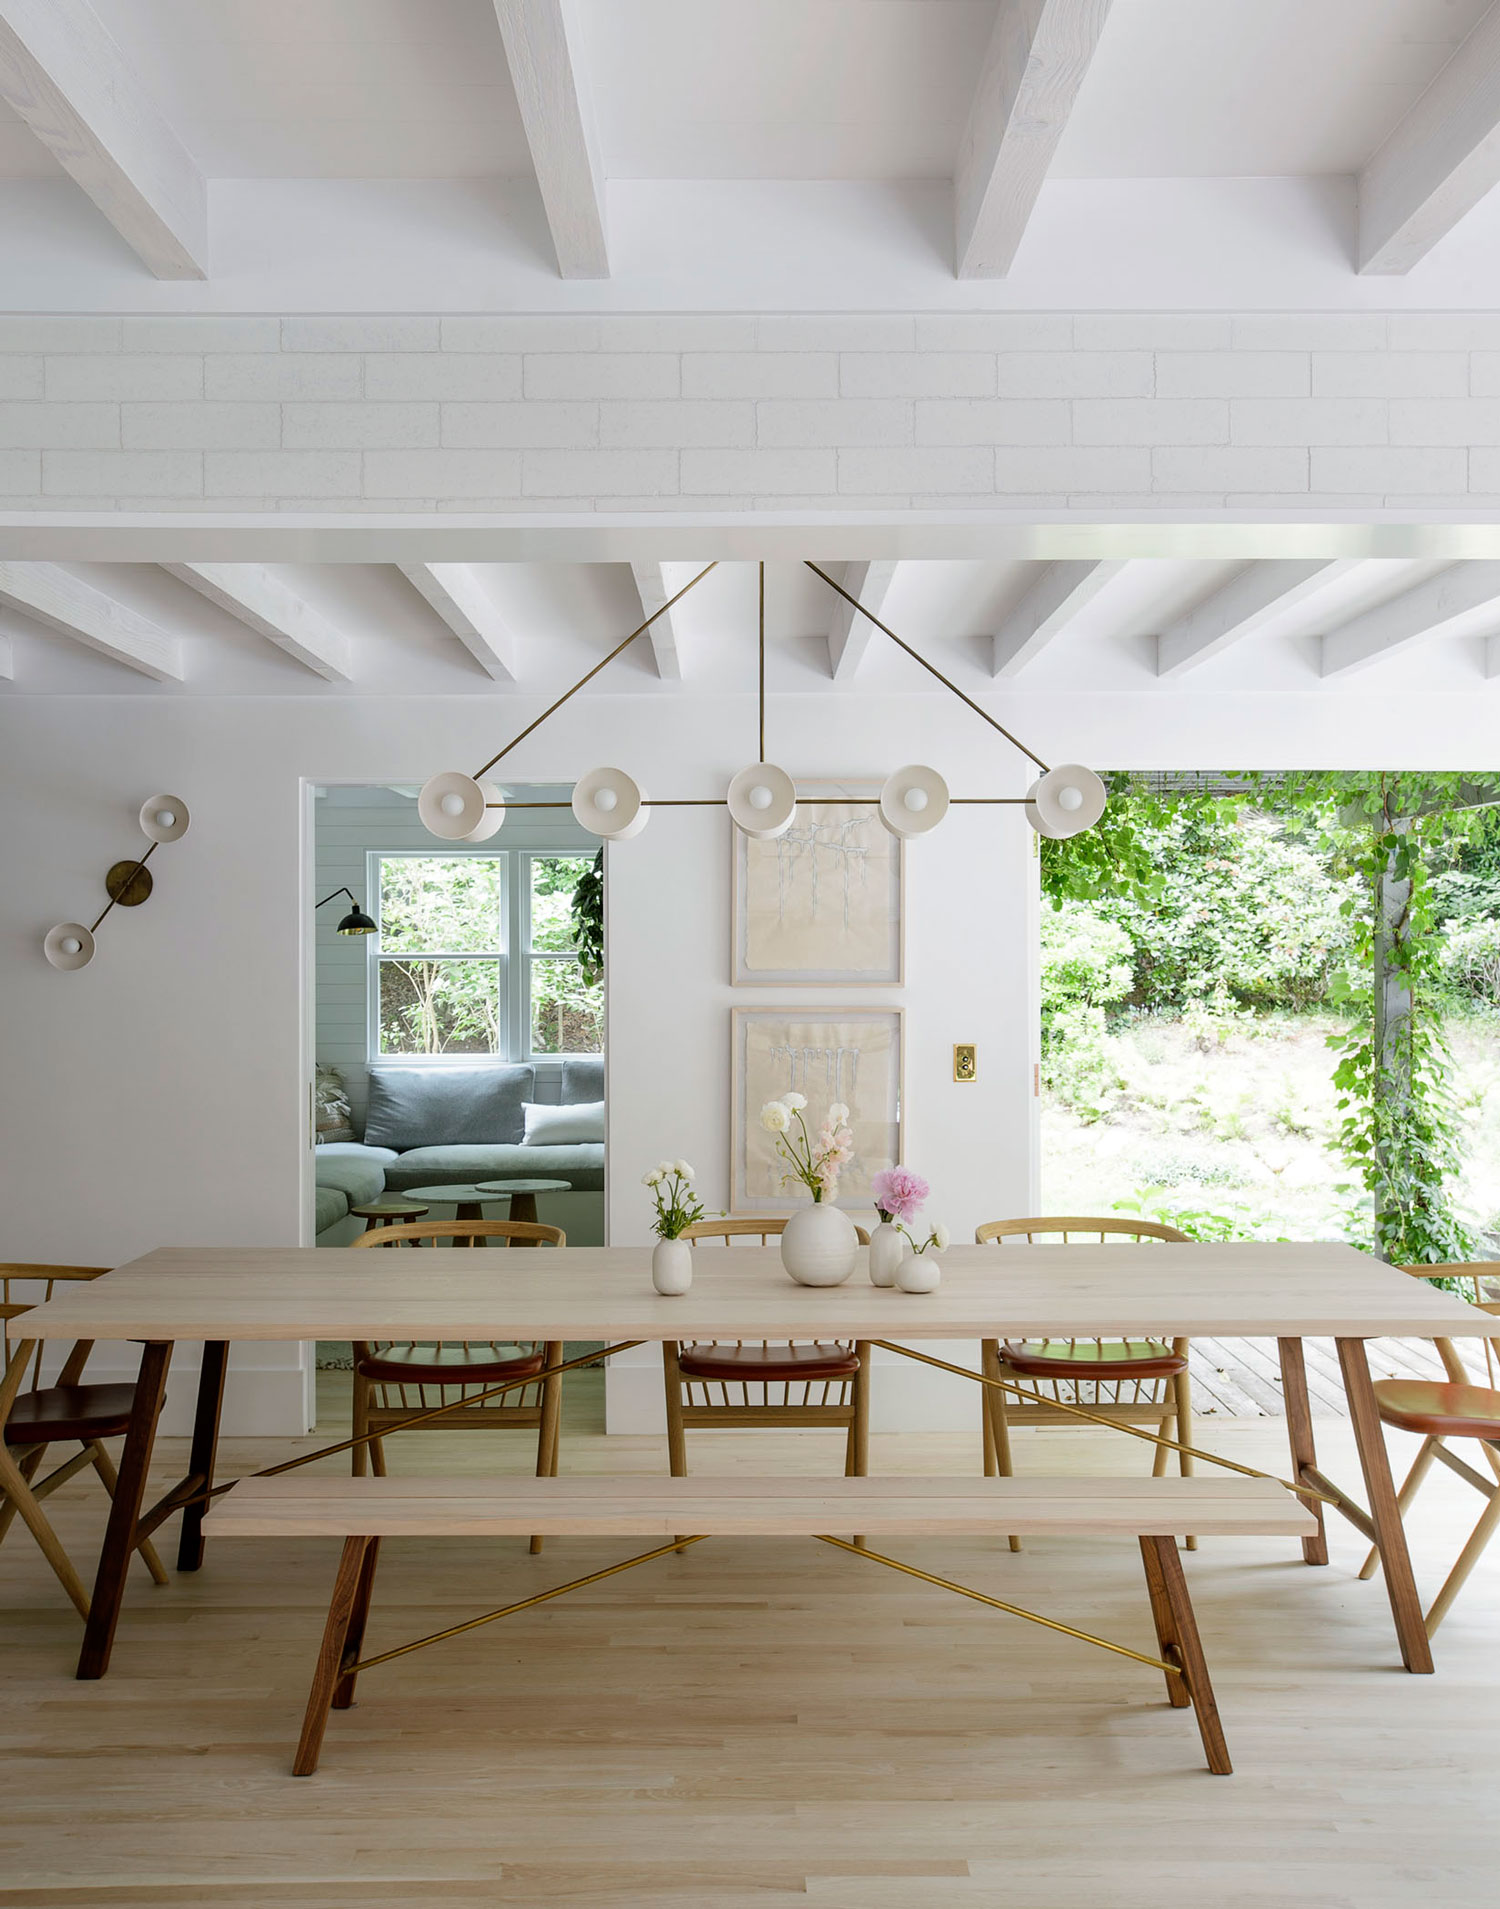 Amagansett-House-by-Jessica-Helgerson-Interior-Design-Yellowtrace-02.jpg